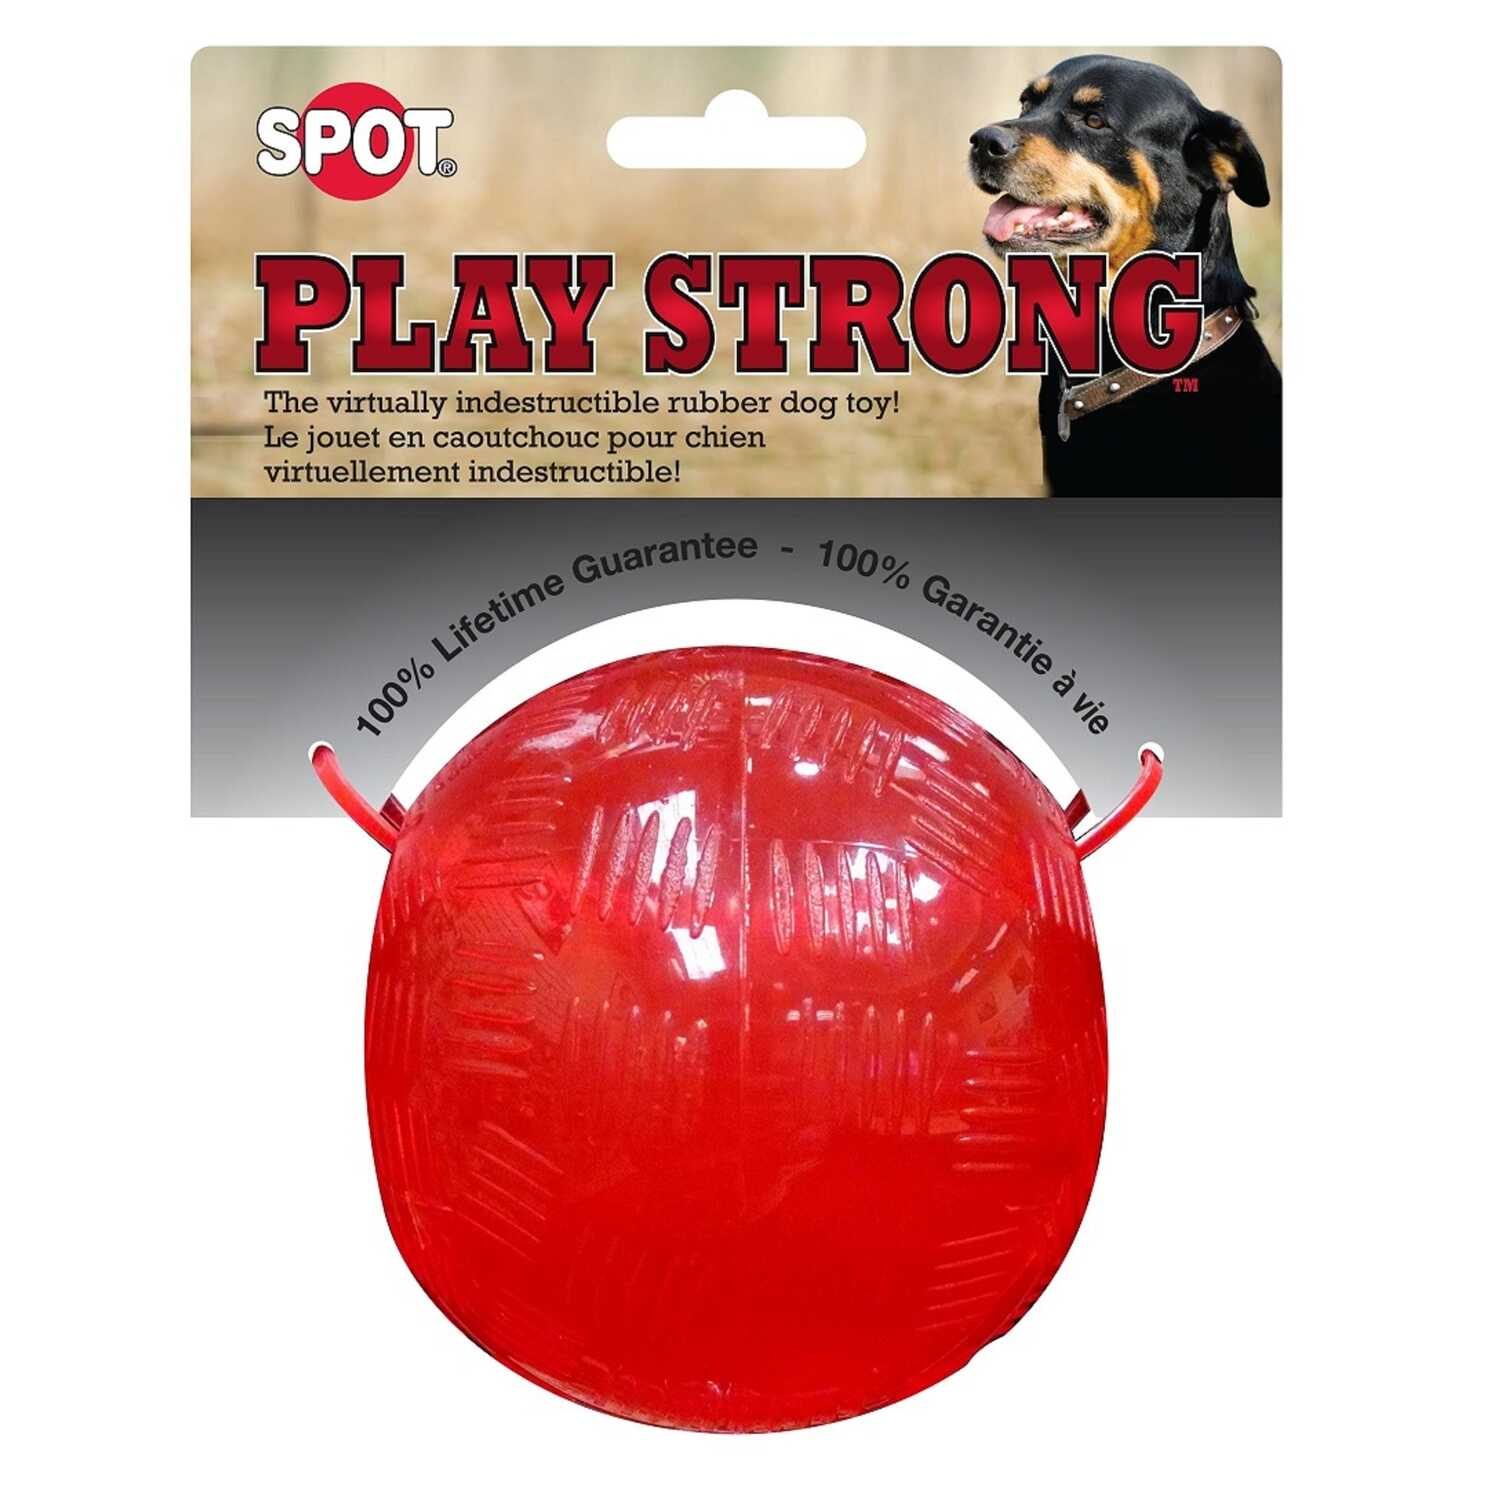 SPOT Play Strong  Ball/Bone  Dog Toy  Rubber